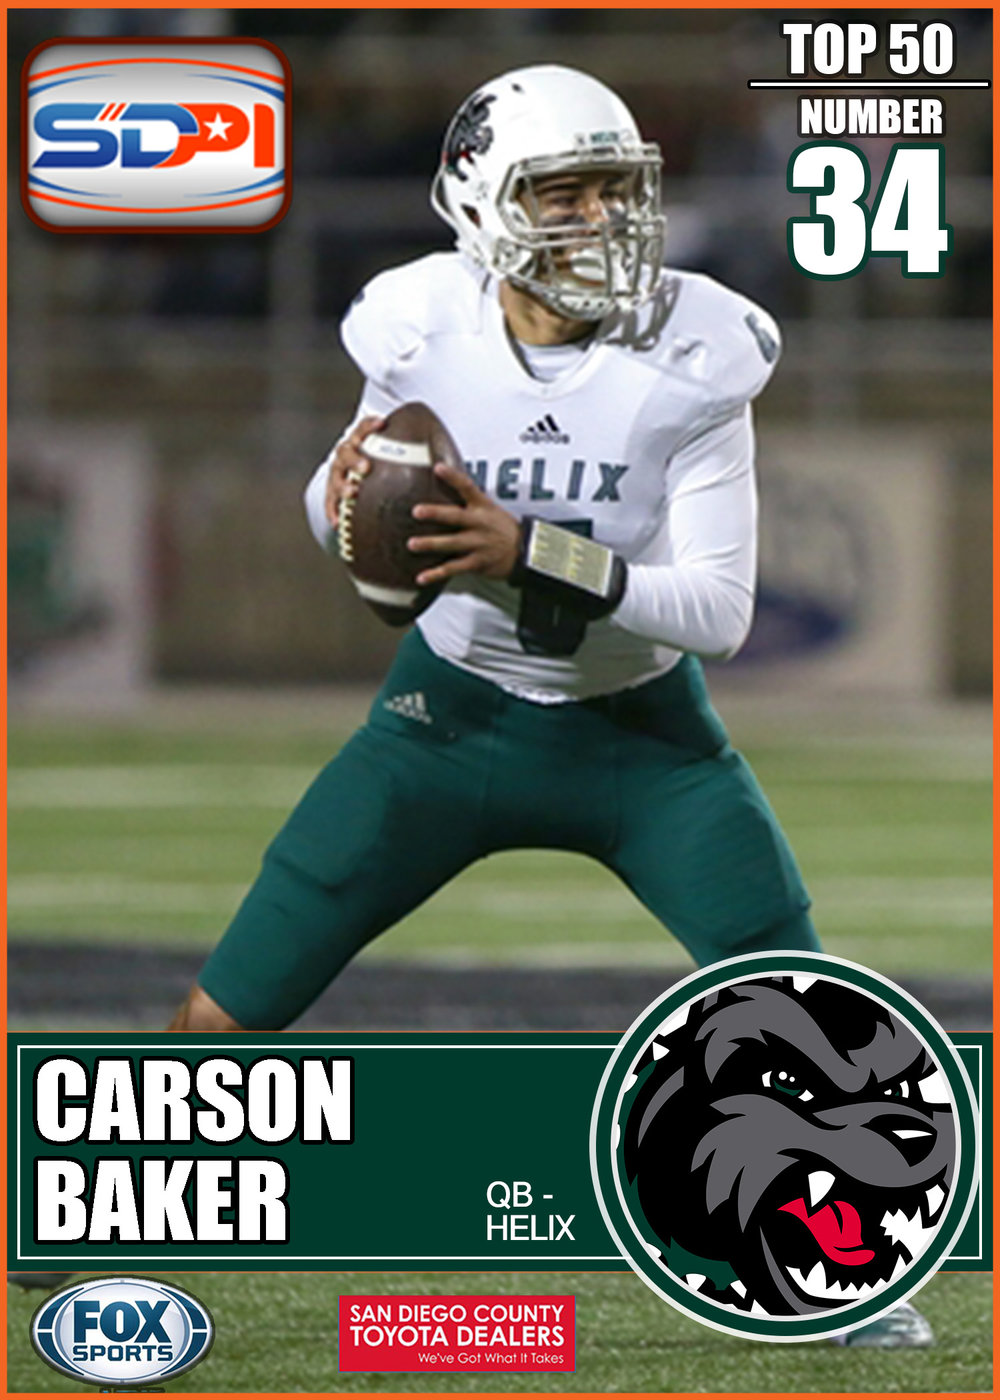 - The Highlanders' finished 2016 as the 7th ranked passing offense in the San DiegoSection thanks to Carson's arm. He showcased impressive efficiency by recording a 23:5touchdown-to- interception ratio, averaging 213.5 yards per game, and completing nearly 67% of his throws. With an abundance of talented targets this year, Baker has a chance to put up even greater numbers.